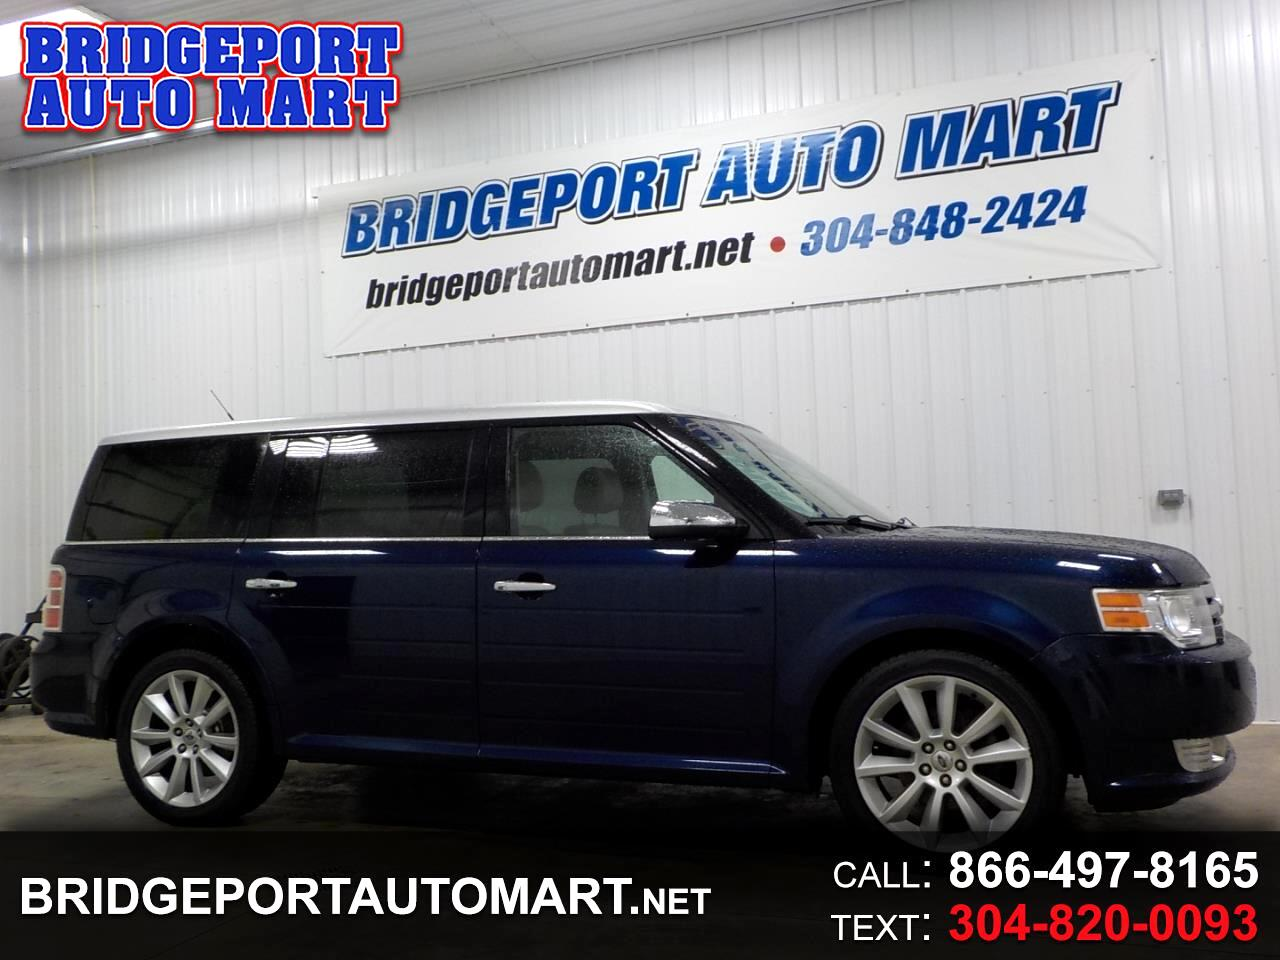 Used Cars For Sale Bridgeport Wv 26330 Bridgeport Auto Mart Inc